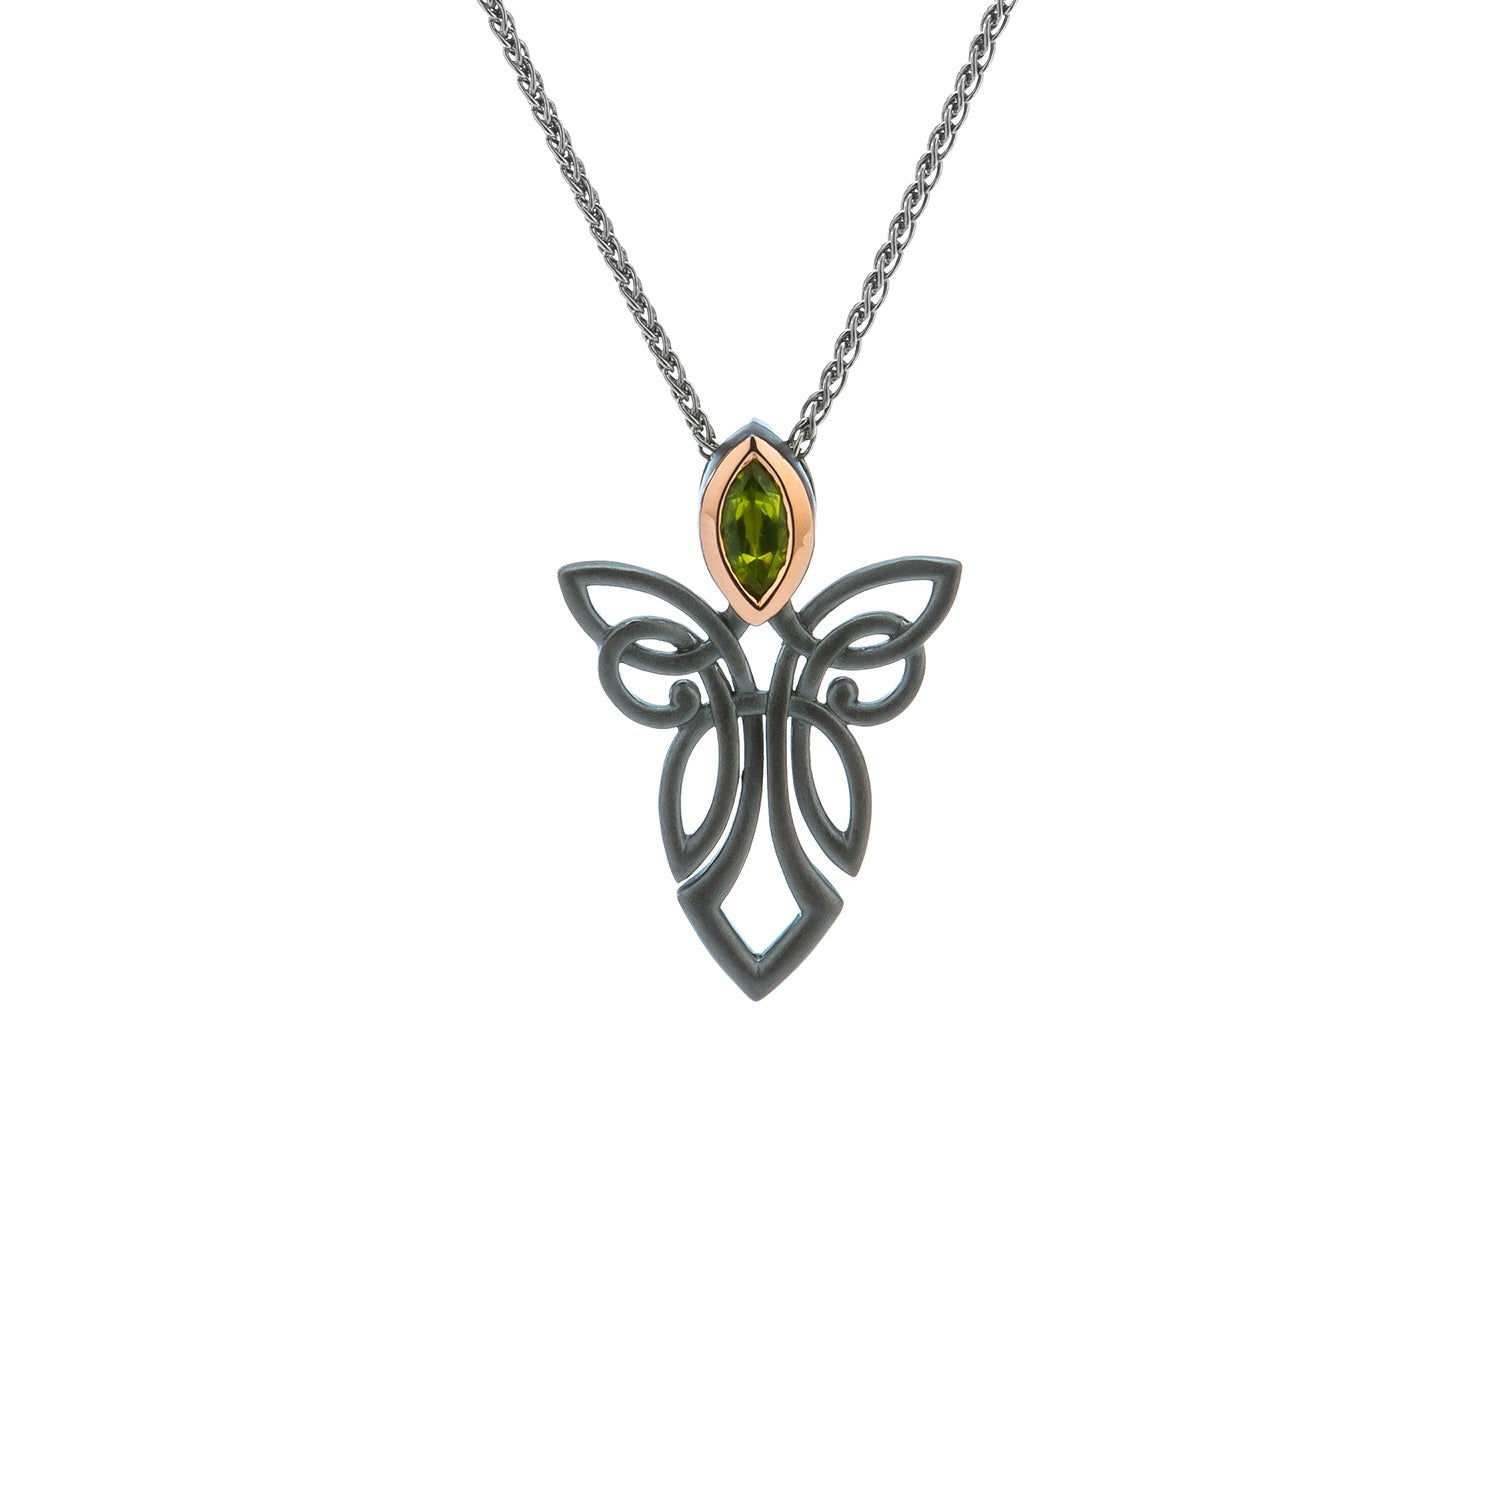 Pendant Ruthenium 10k Rose Peridot Guardian Angel Pendant from welch and company jewelers near syracuse ny